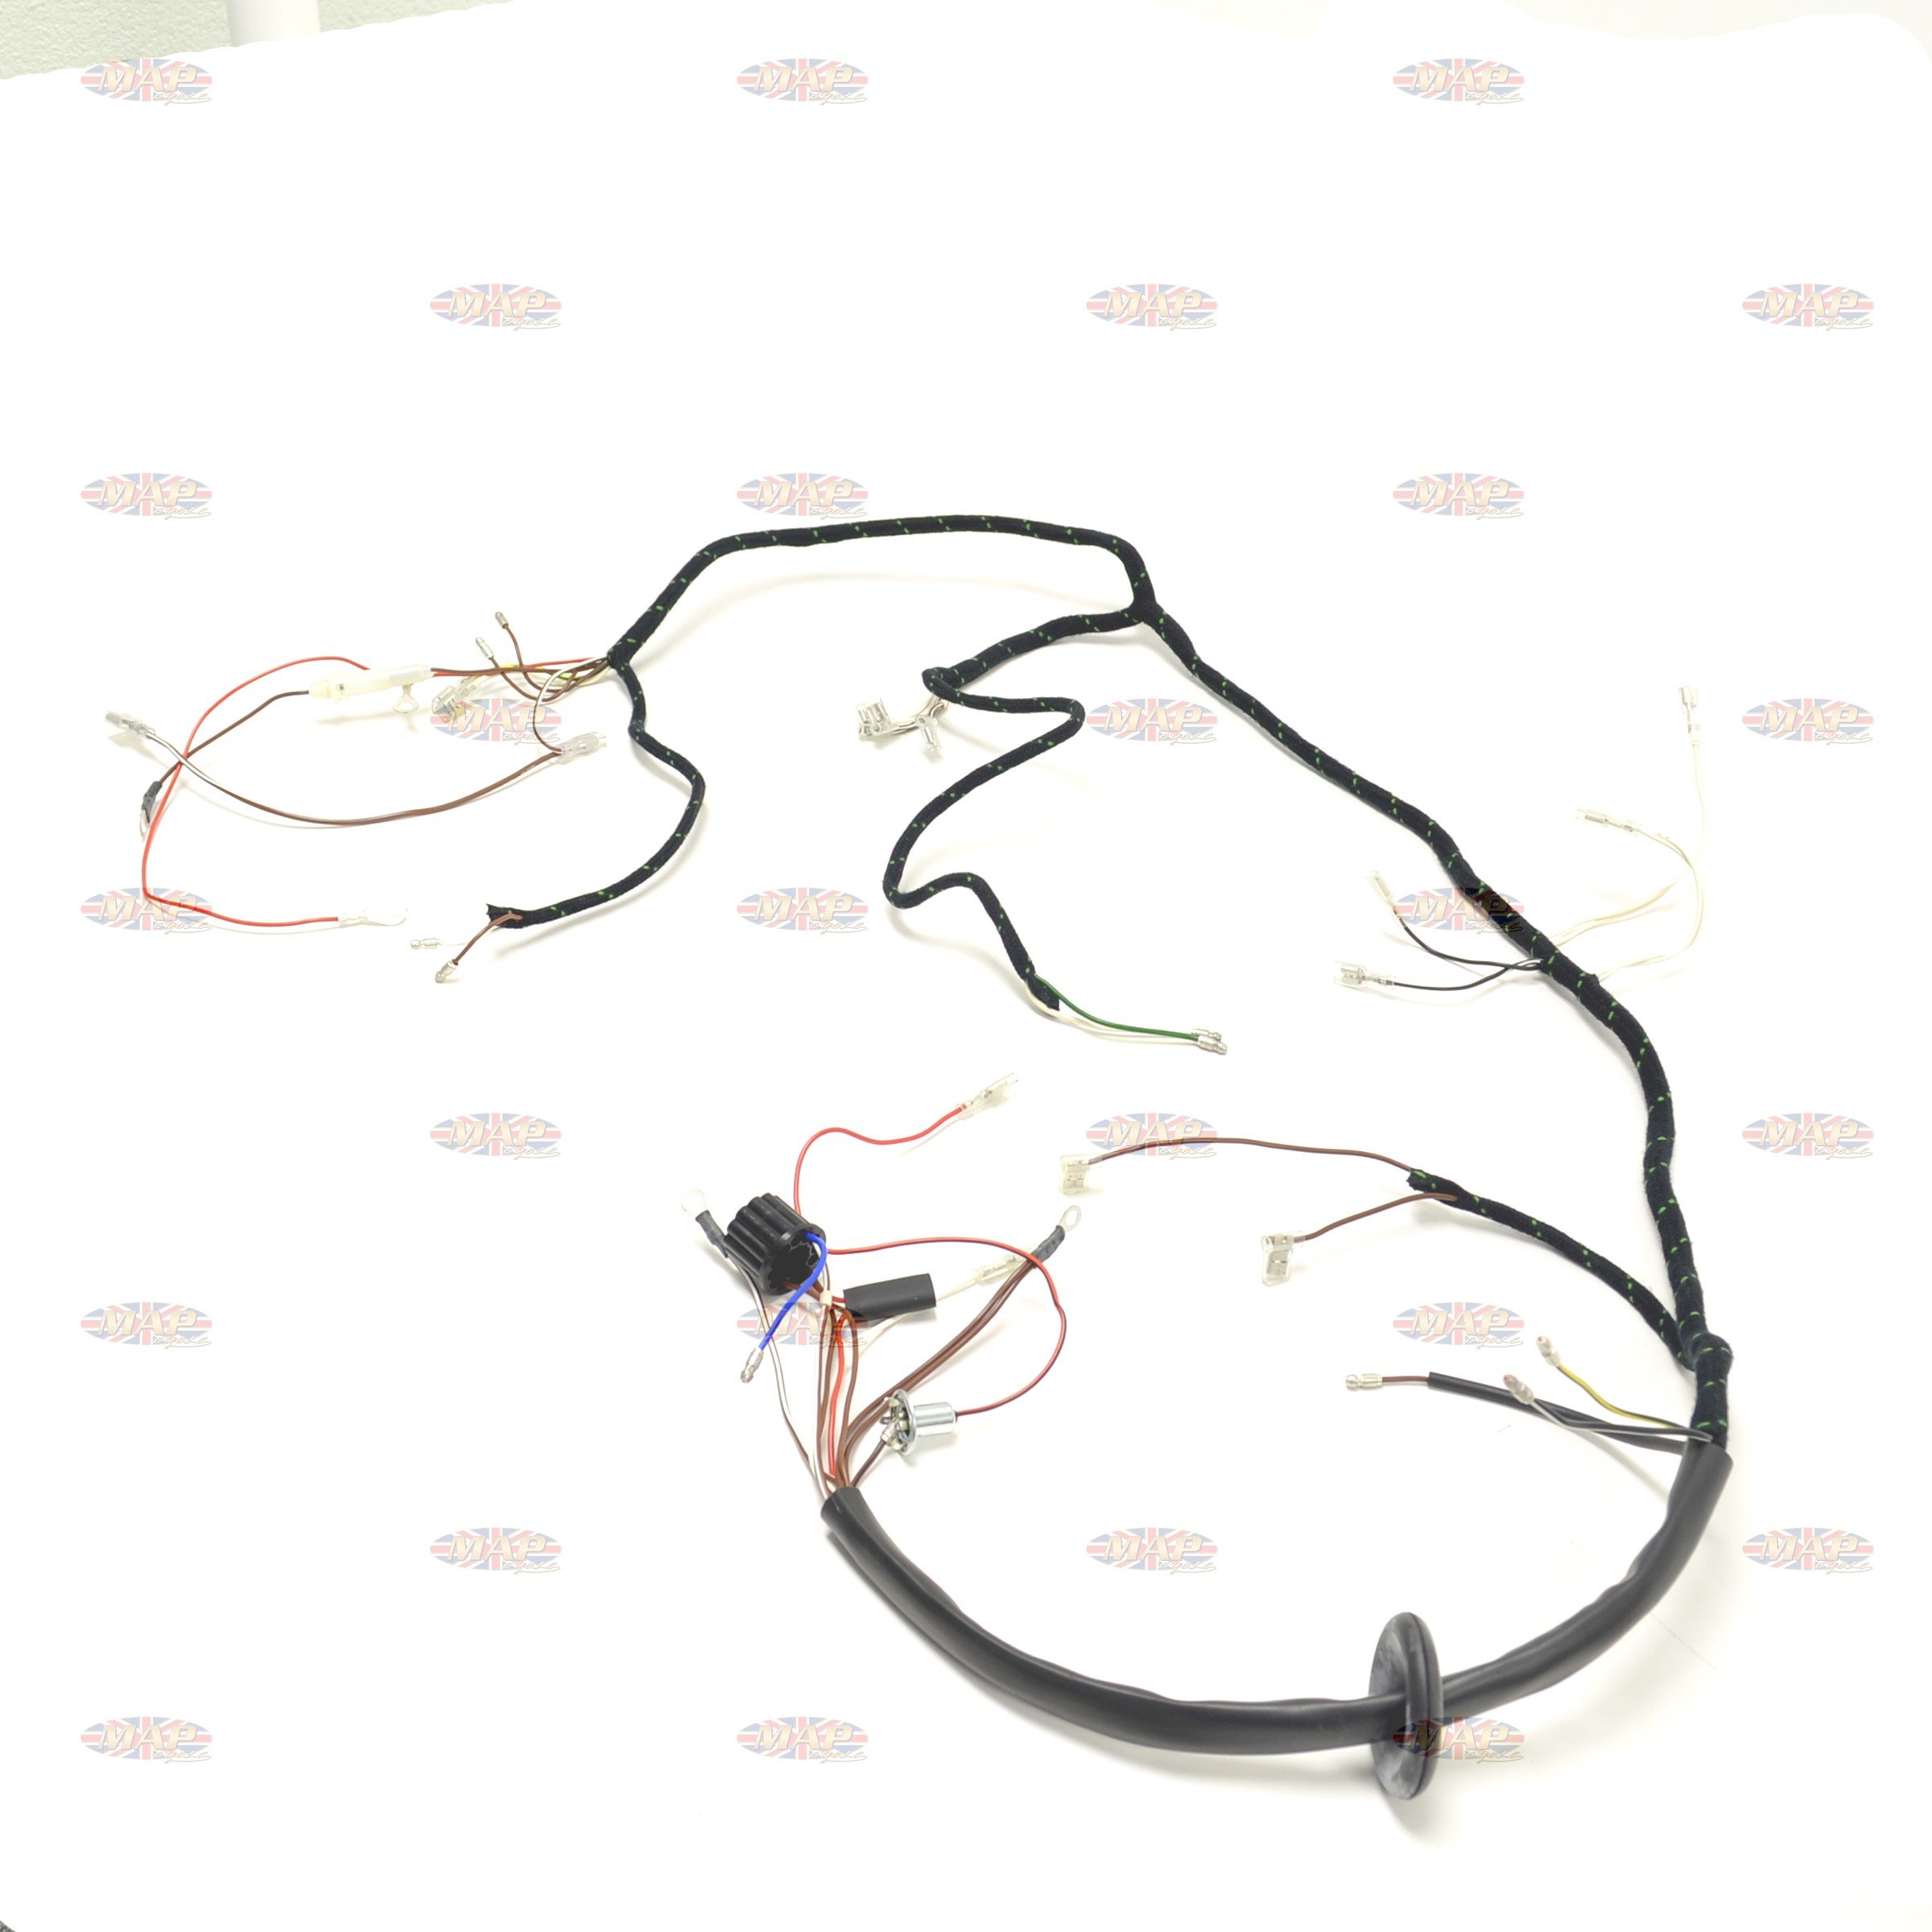 triumph 1967 t90 t100 t120 tr6 uk made quality wiring harness 0c6 triumph 1967 t90 t100 t120 tr6 uk made quality wiring harness triumph t140 wiring harness at couponss.co